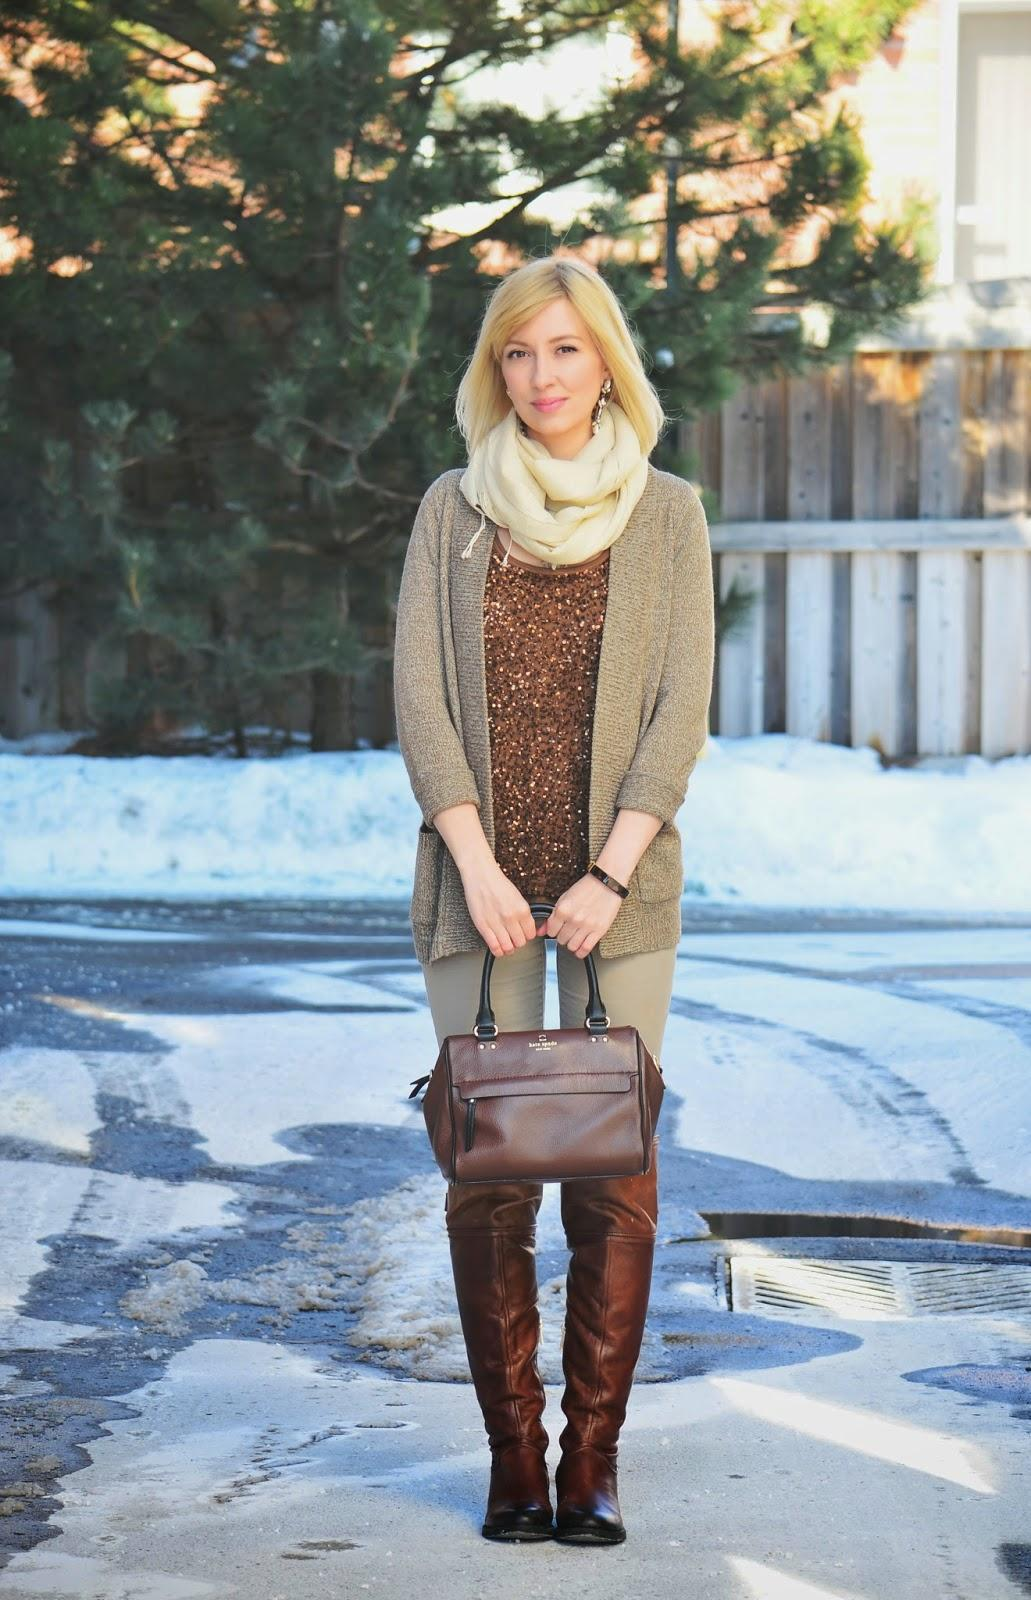 Style, OOTD, sequins, H&M, j. Crew, J. Crew style, preppy, Vince Camuto, Kate Spade, Benevolent Jewels, sequin top outfit, sequin top style, preppy style, brown outfit, beige outfit